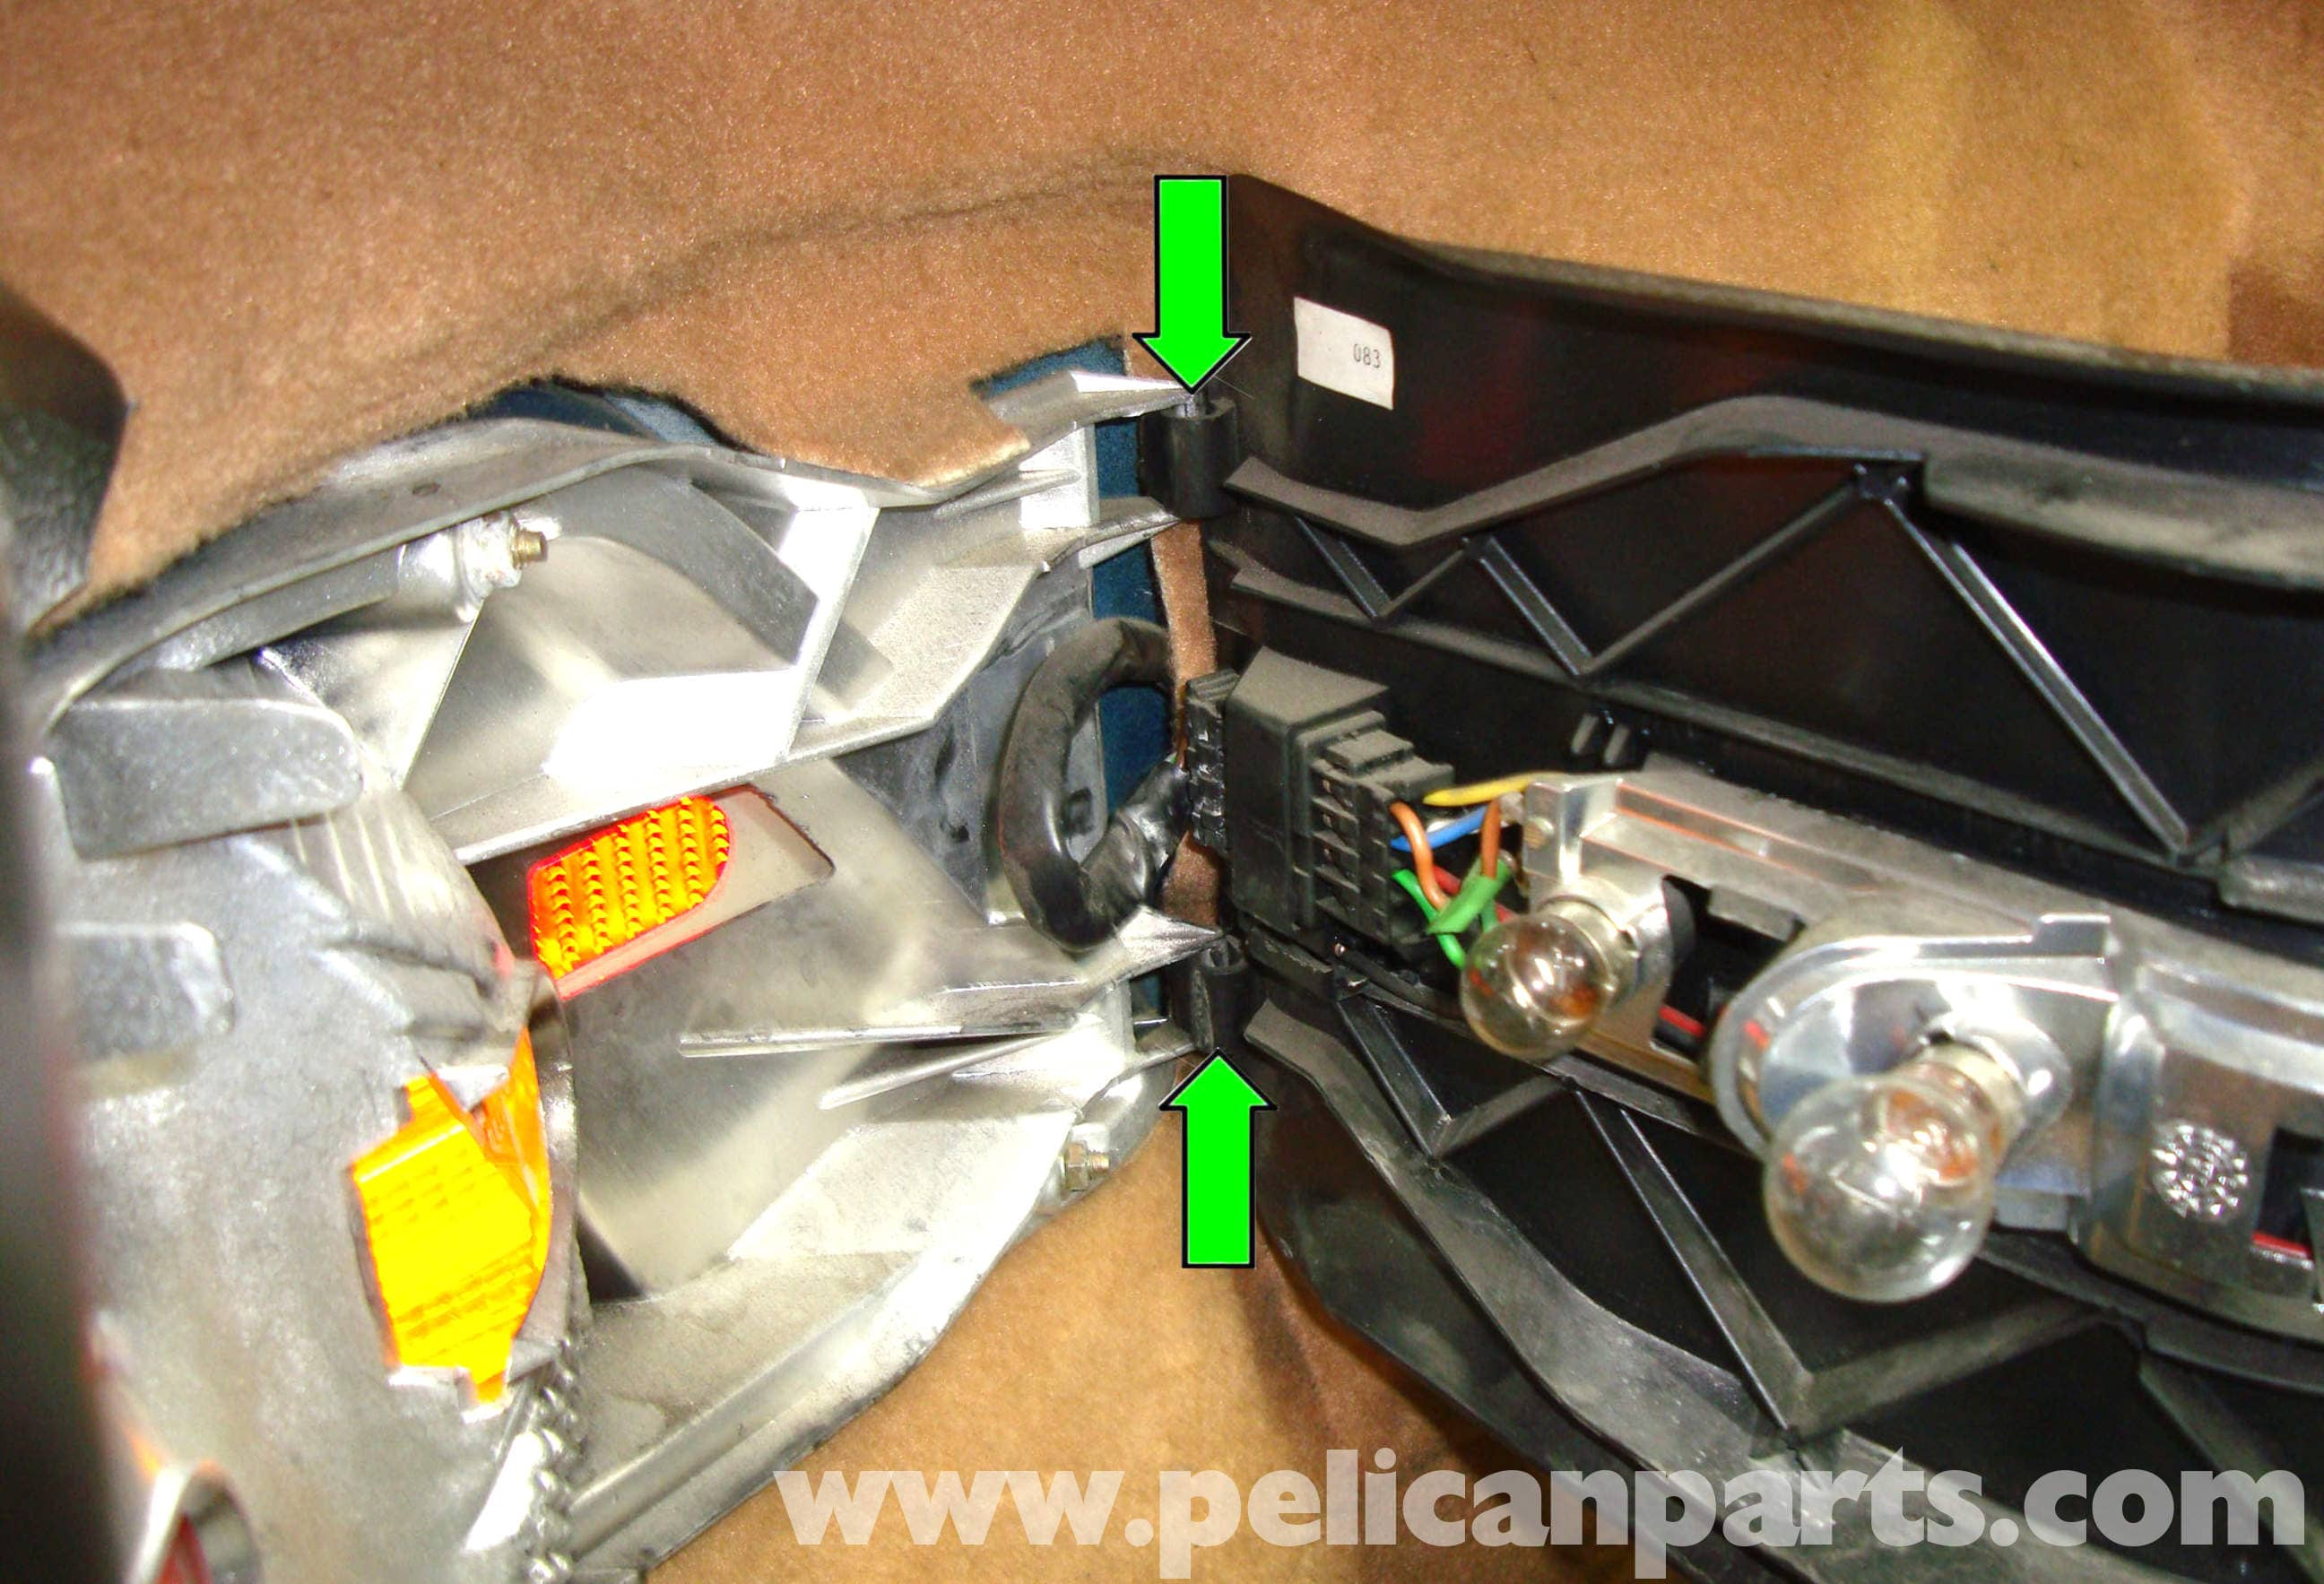 Mercedes-Benz R129 Tail Light Assembly Removal - SL500